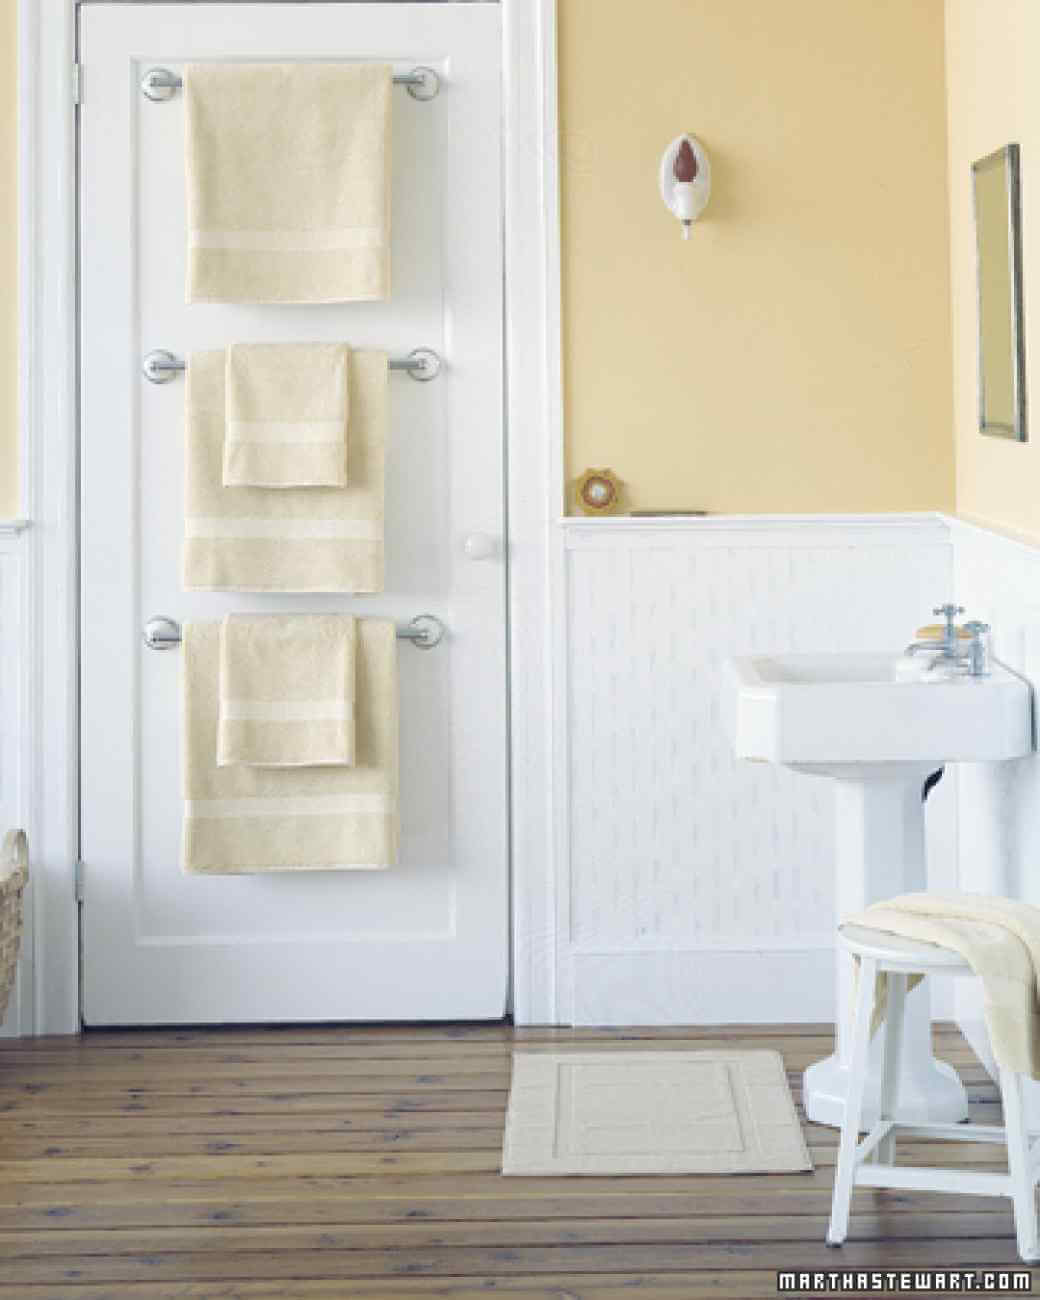 Storage in small bathroom - 4 An Example Of Vertical Space